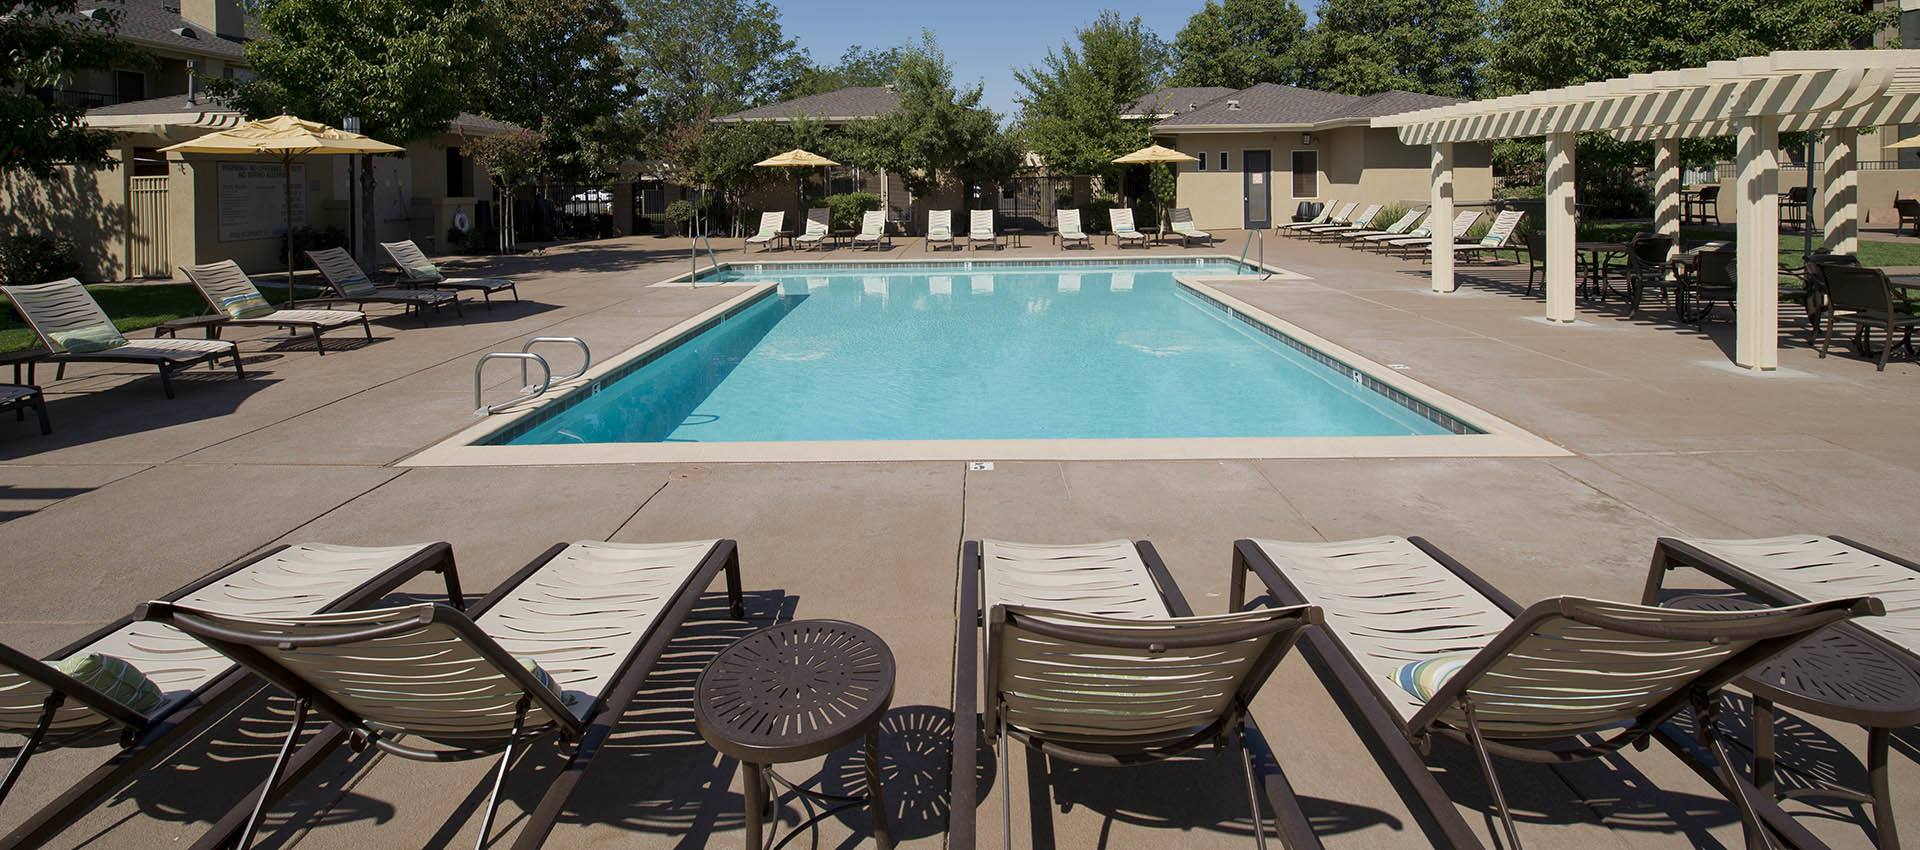 Expansive Pool Deck with WiFi at Cross Pointe Apartment Homes in Antioch